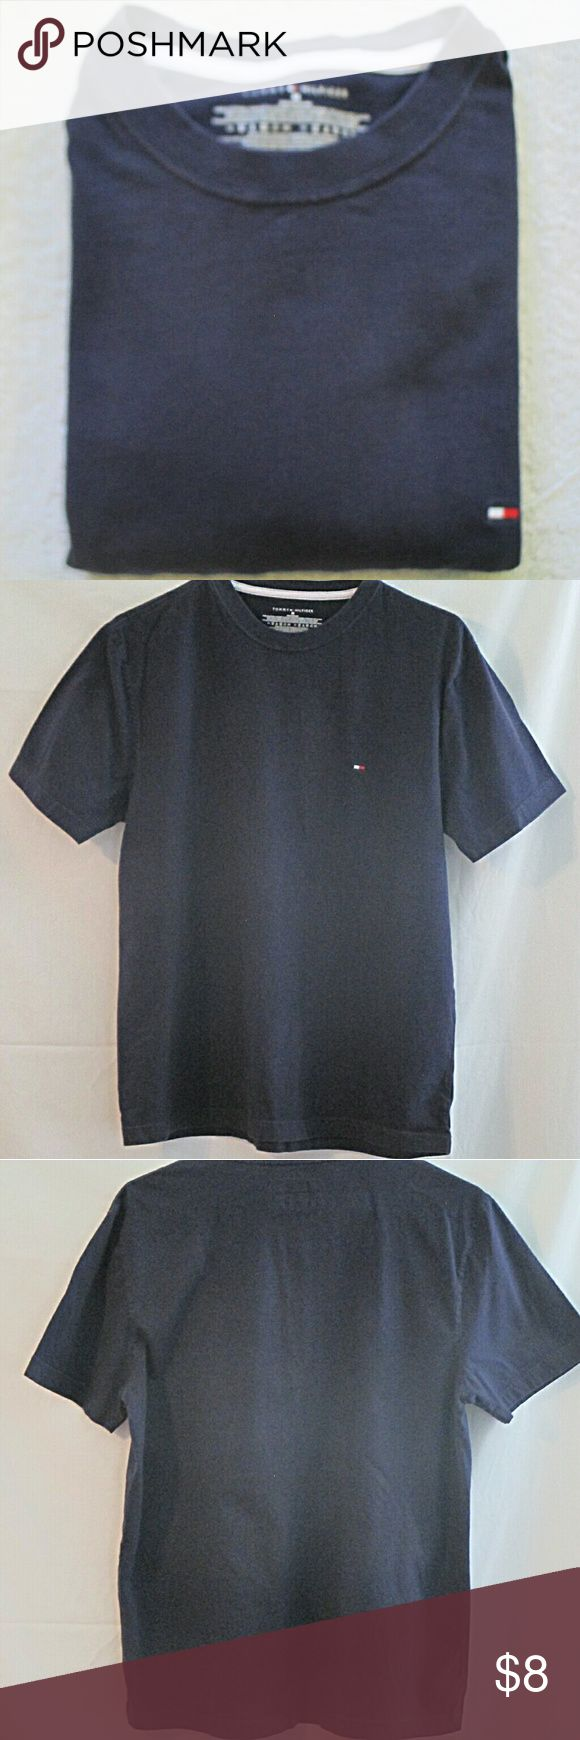 """Tommy Hilfiger Navy Blue Polo Shirt  M Here's a nice looking navy blue , short sleeve shirt that is in good condition with only gentle wear. Stated size is medium. Measurements are 18"""" shoulders, 21"""" chest, 9"""" cuffs, 21"""" tail, 26"""" length. All measurements are taken with the garment laying flat. Tommy Hilfiger Shirts Polos"""